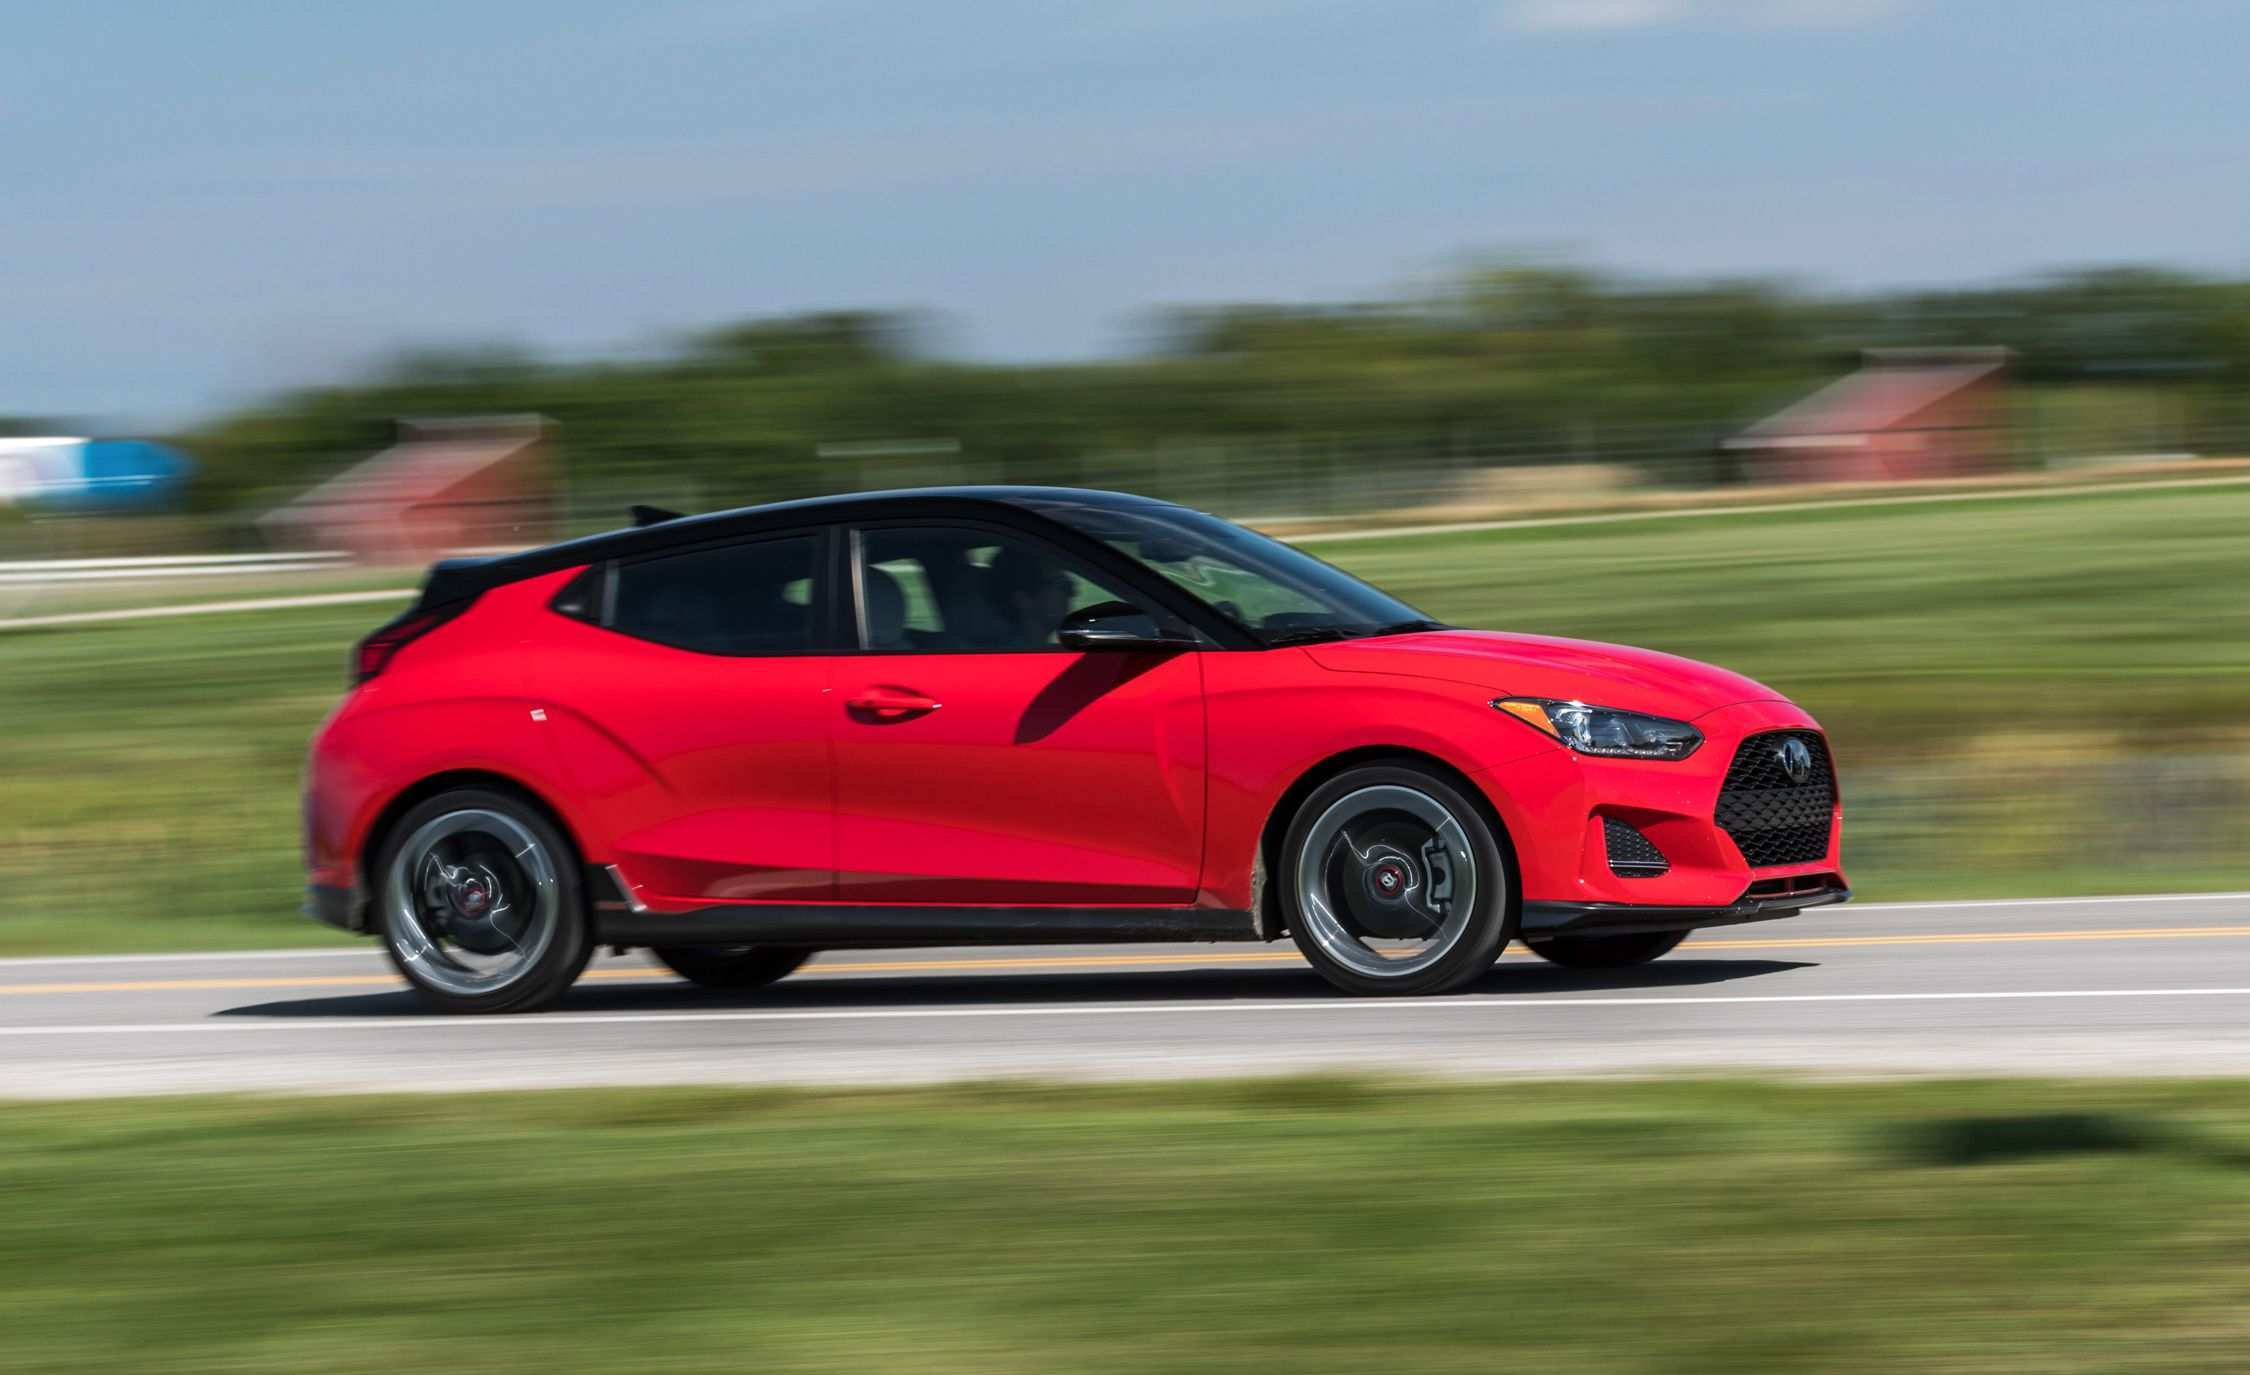 69 Concept of 2019 Hyundai Veloster Turbo Release Date with 2019 Hyundai Veloster Turbo